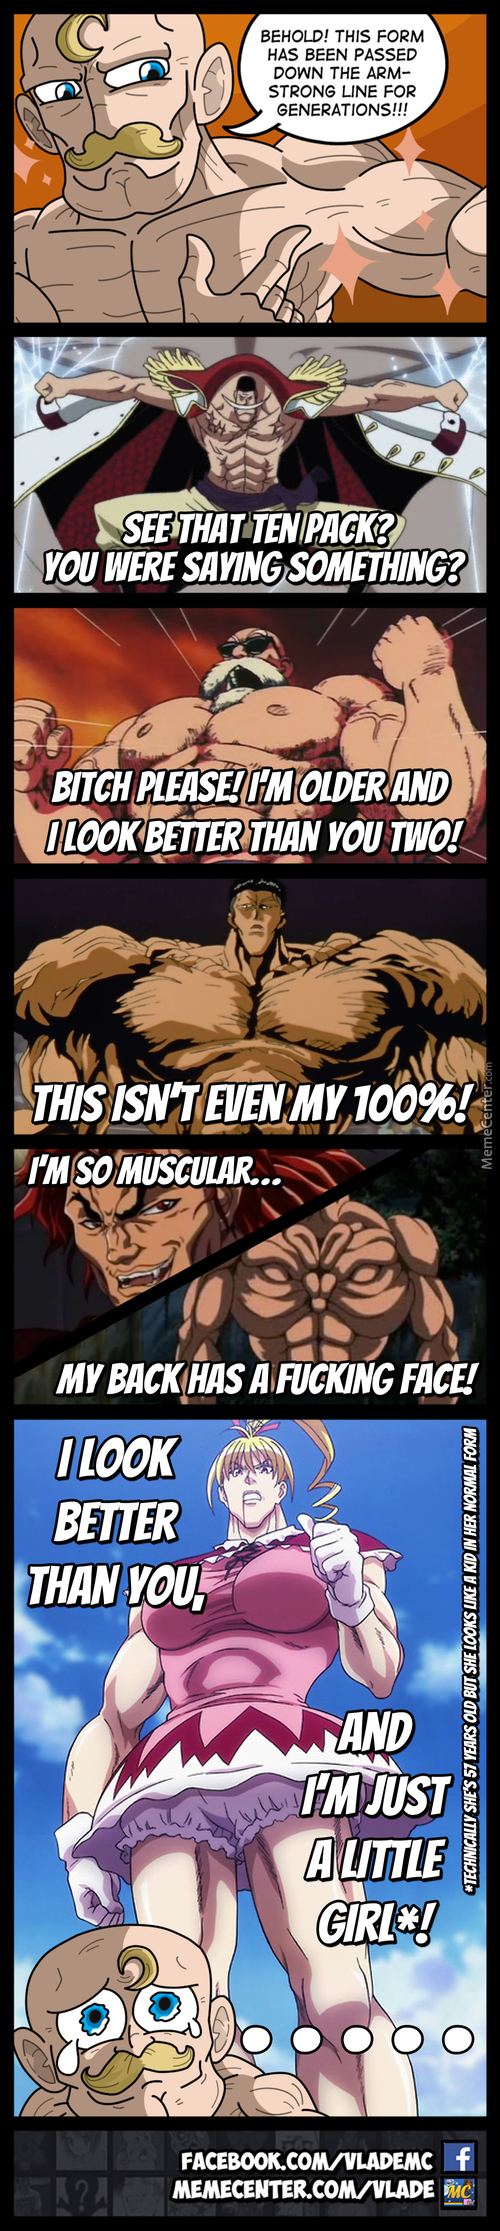 Muscular Features